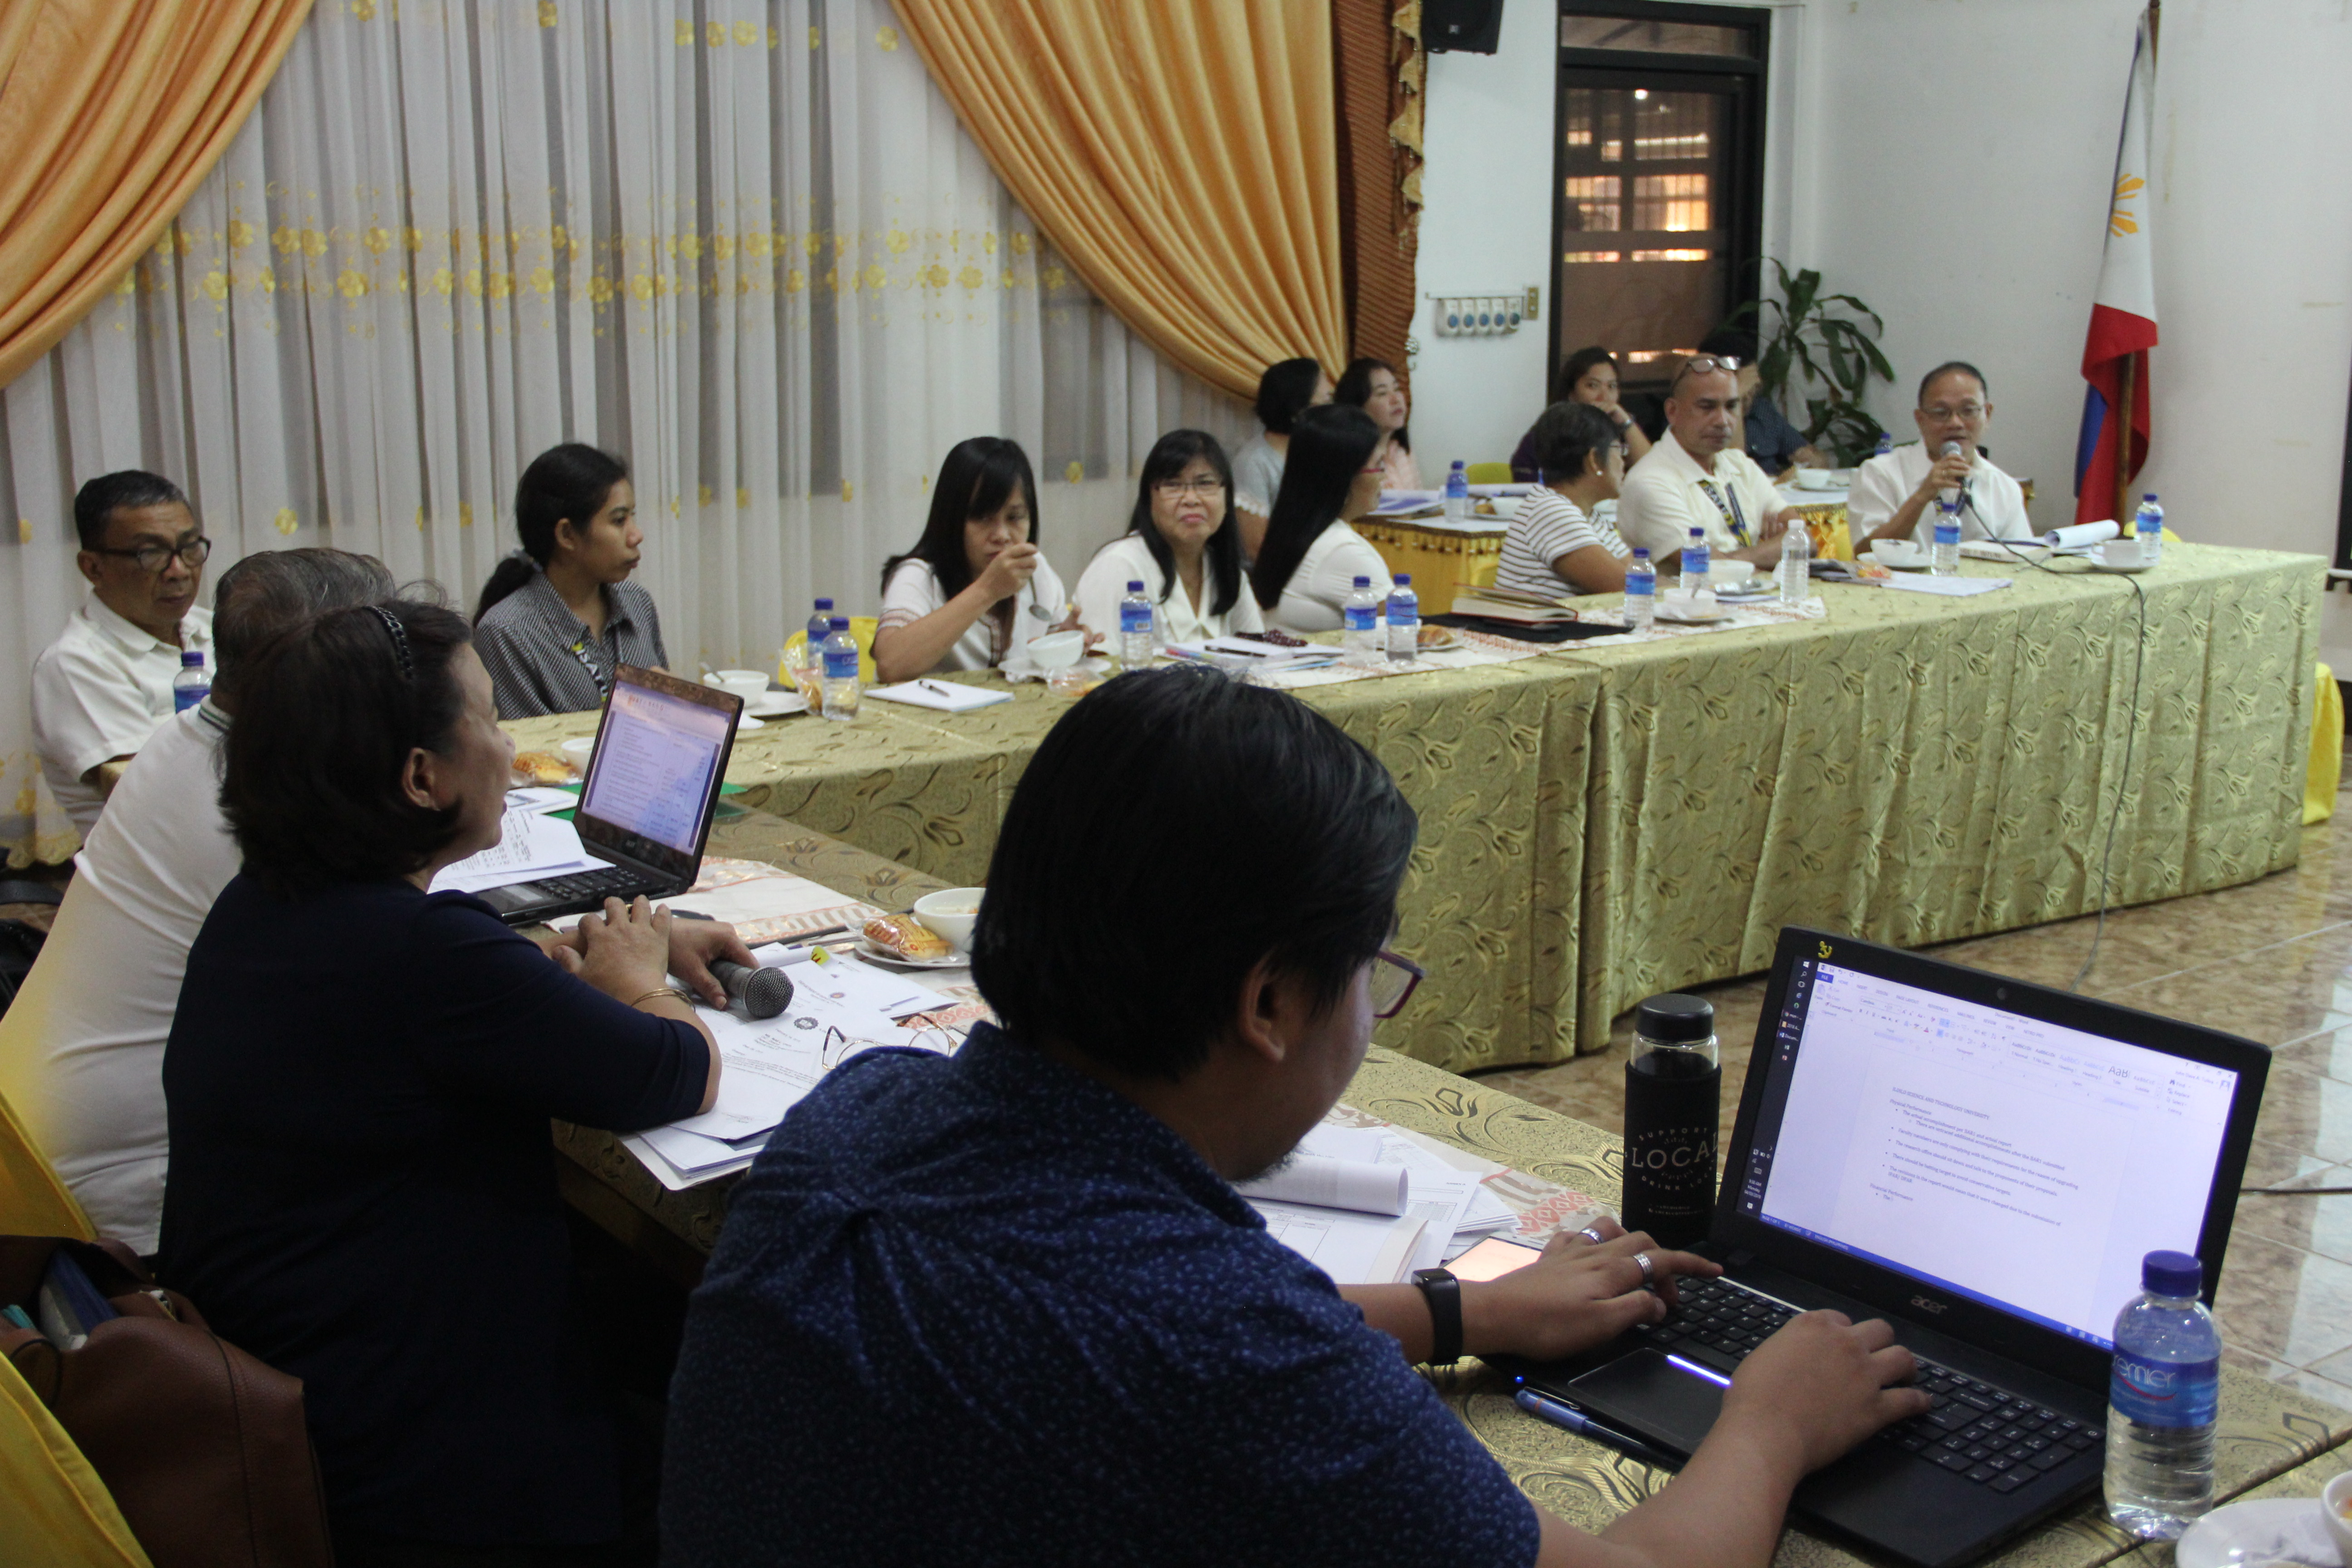 ISAT U key officials present the University budget performance before the members of the Department of Budget and Management at the New Board Room on March 4, 2019.